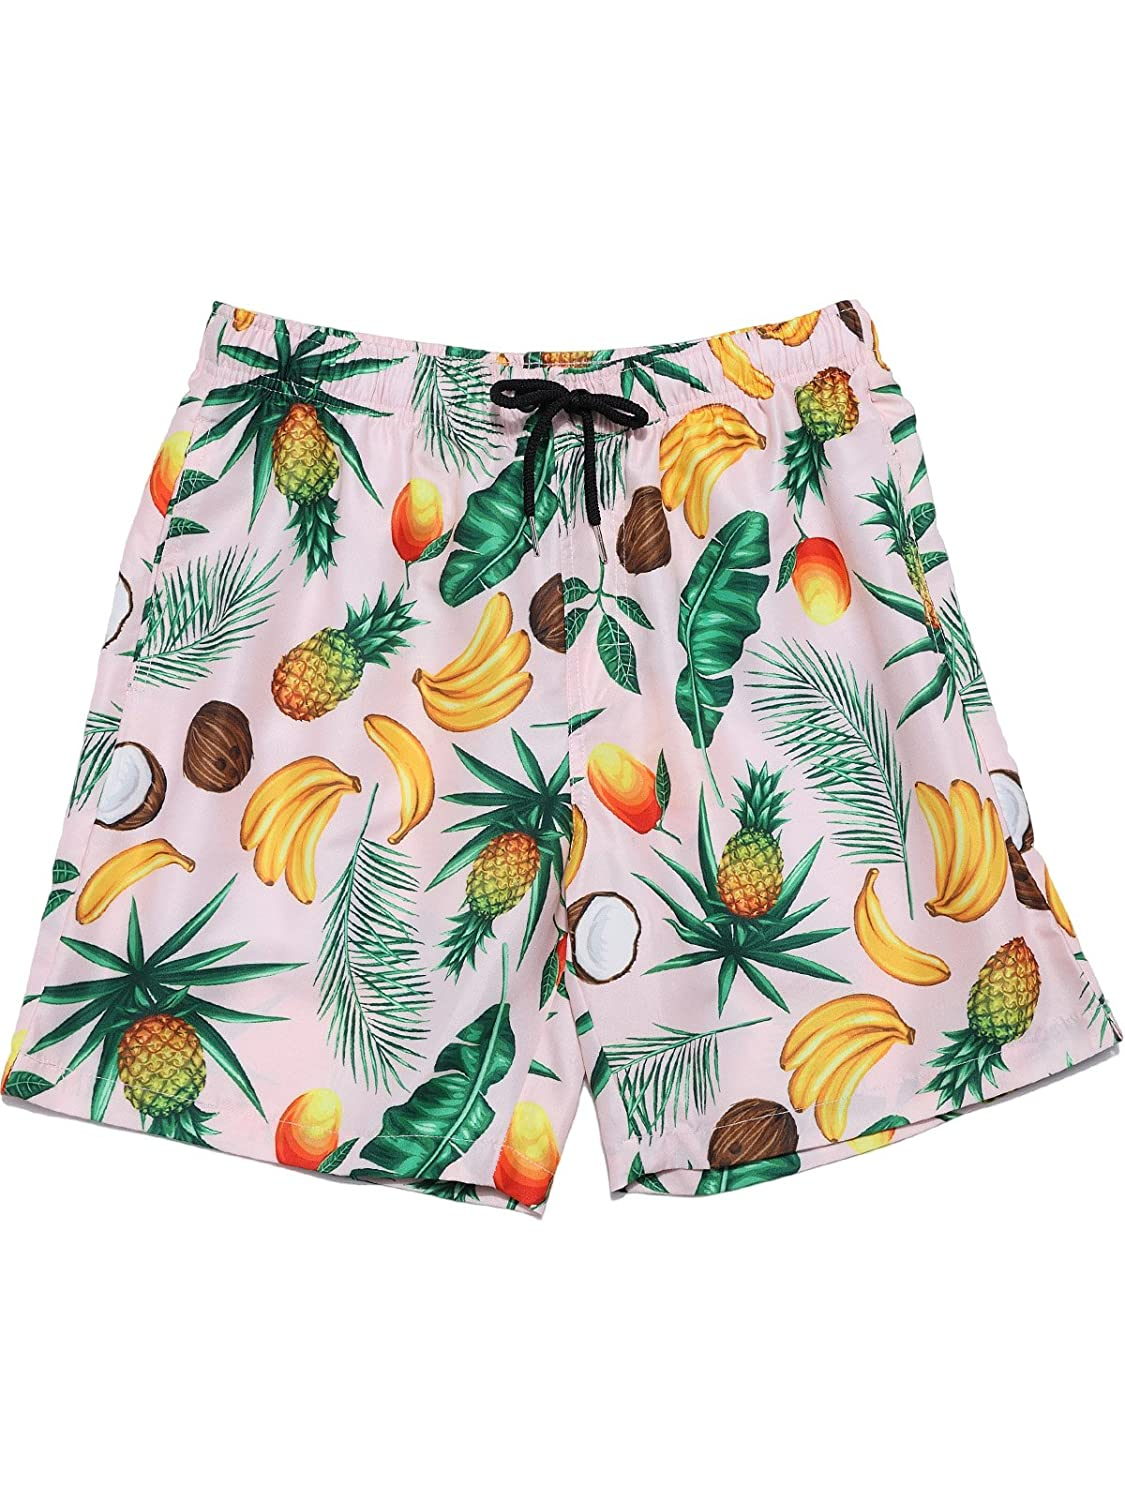 e3aa2bbf4f The swim shorts is hit right above your knee but do not look short. All of  Hopioneer\'s board shorts printed tropical pattern.